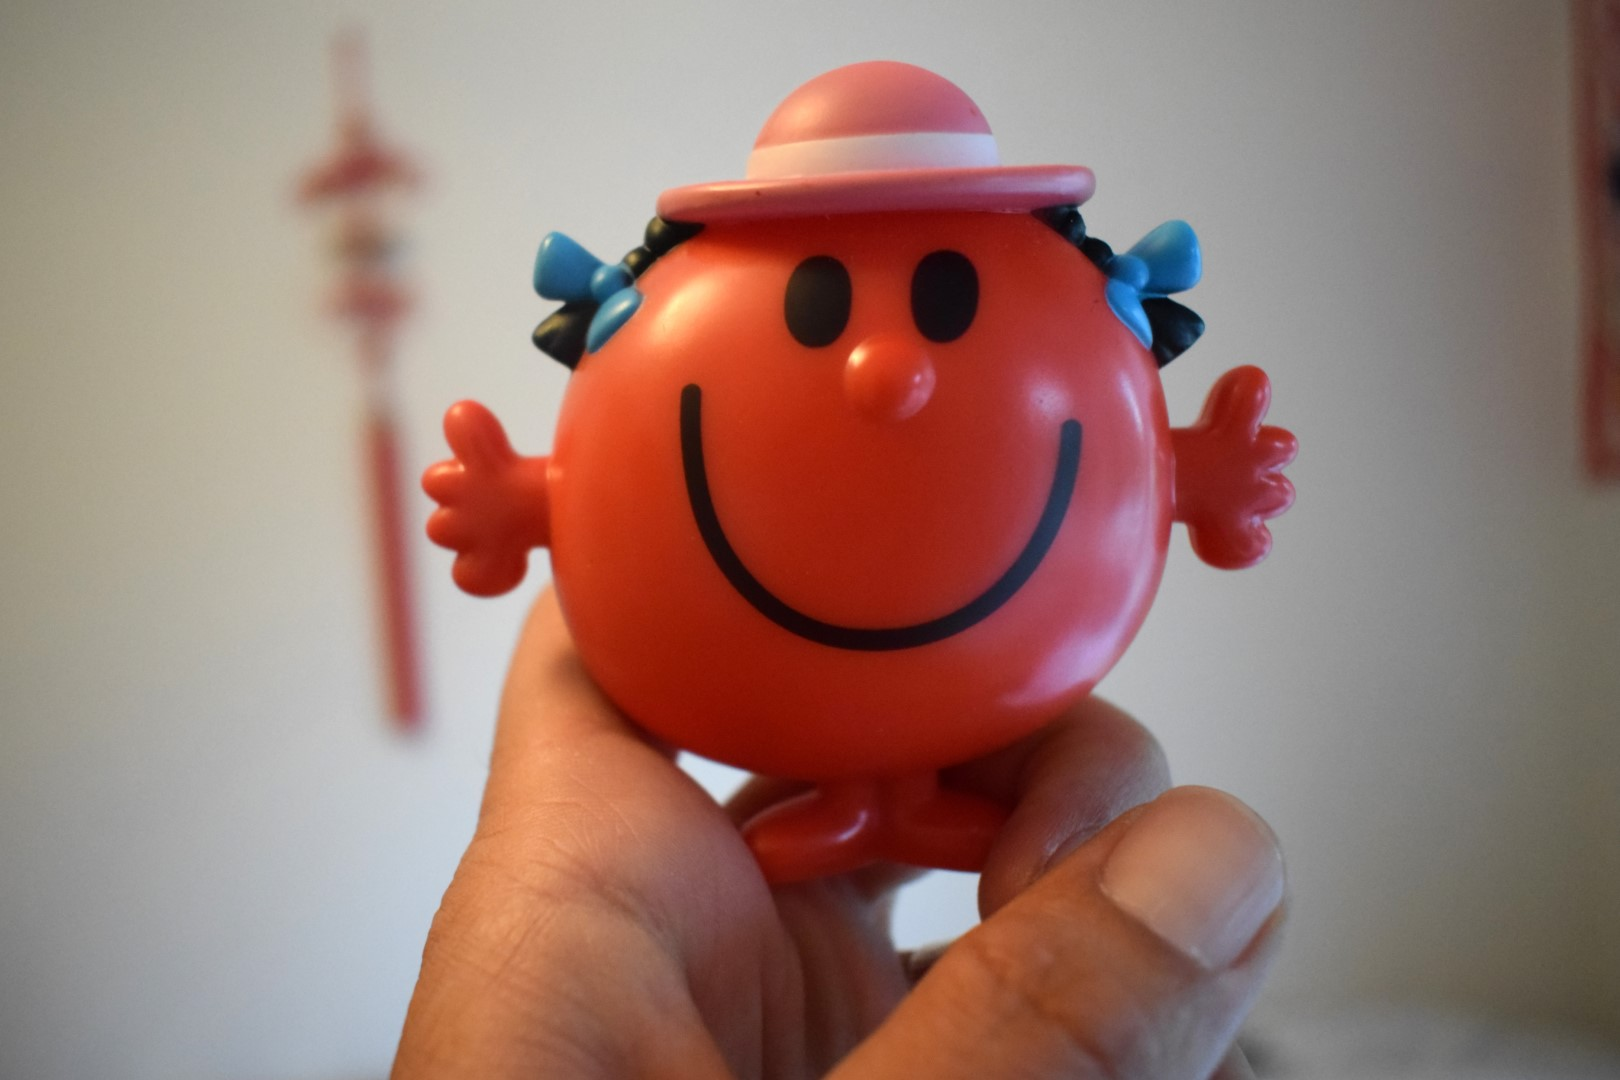 Madame joyeuse (Mrs Happy), toy from a McDonalds' Happy Meal